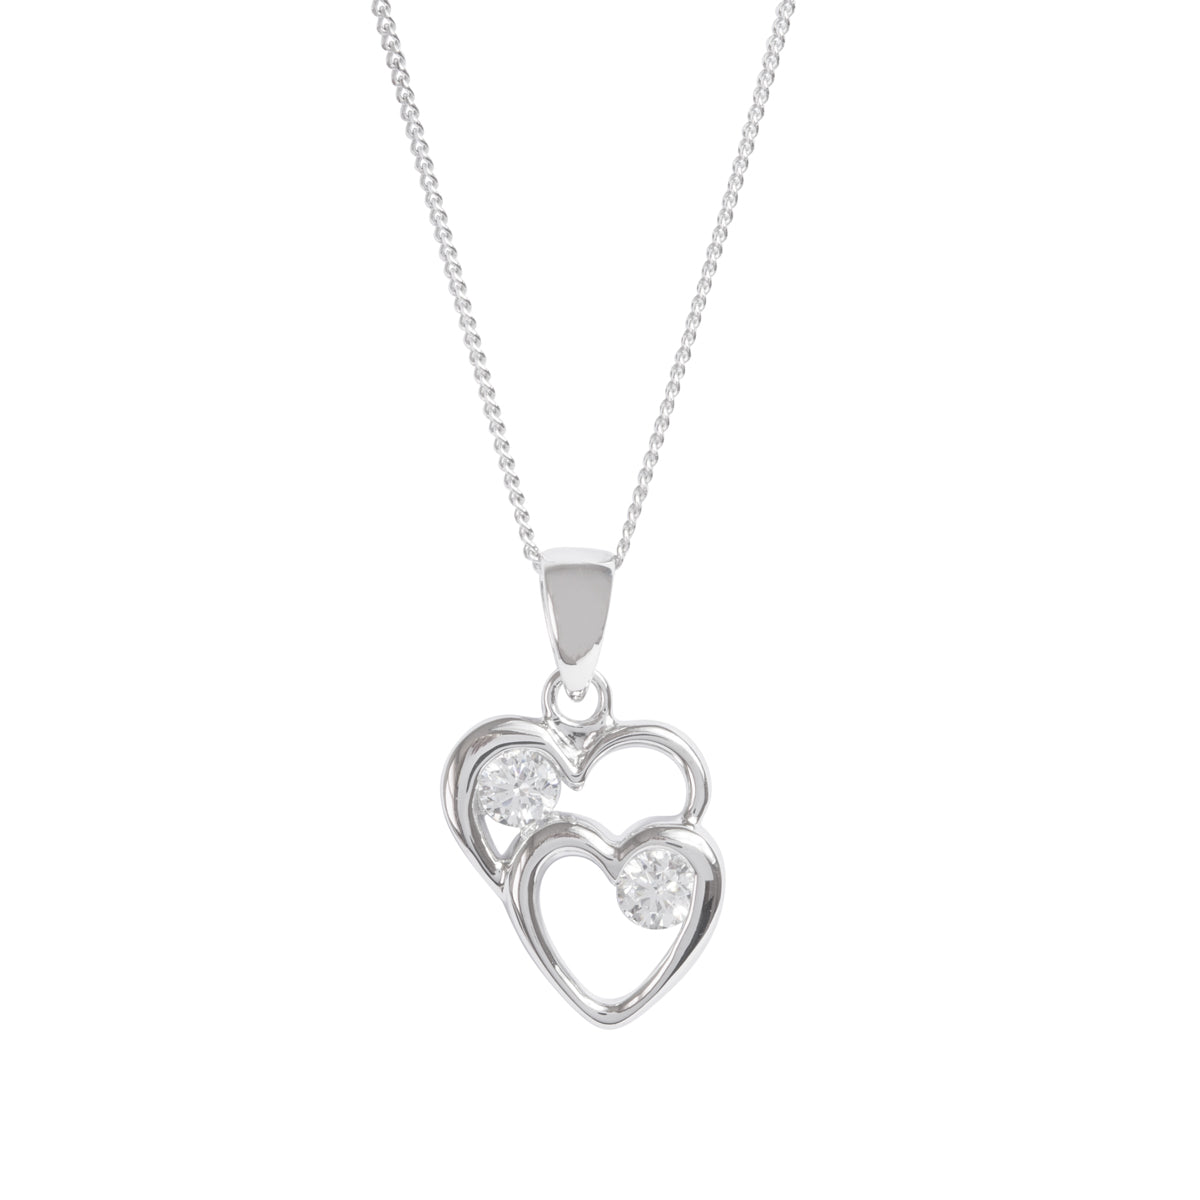 Sparkly double heart pendant